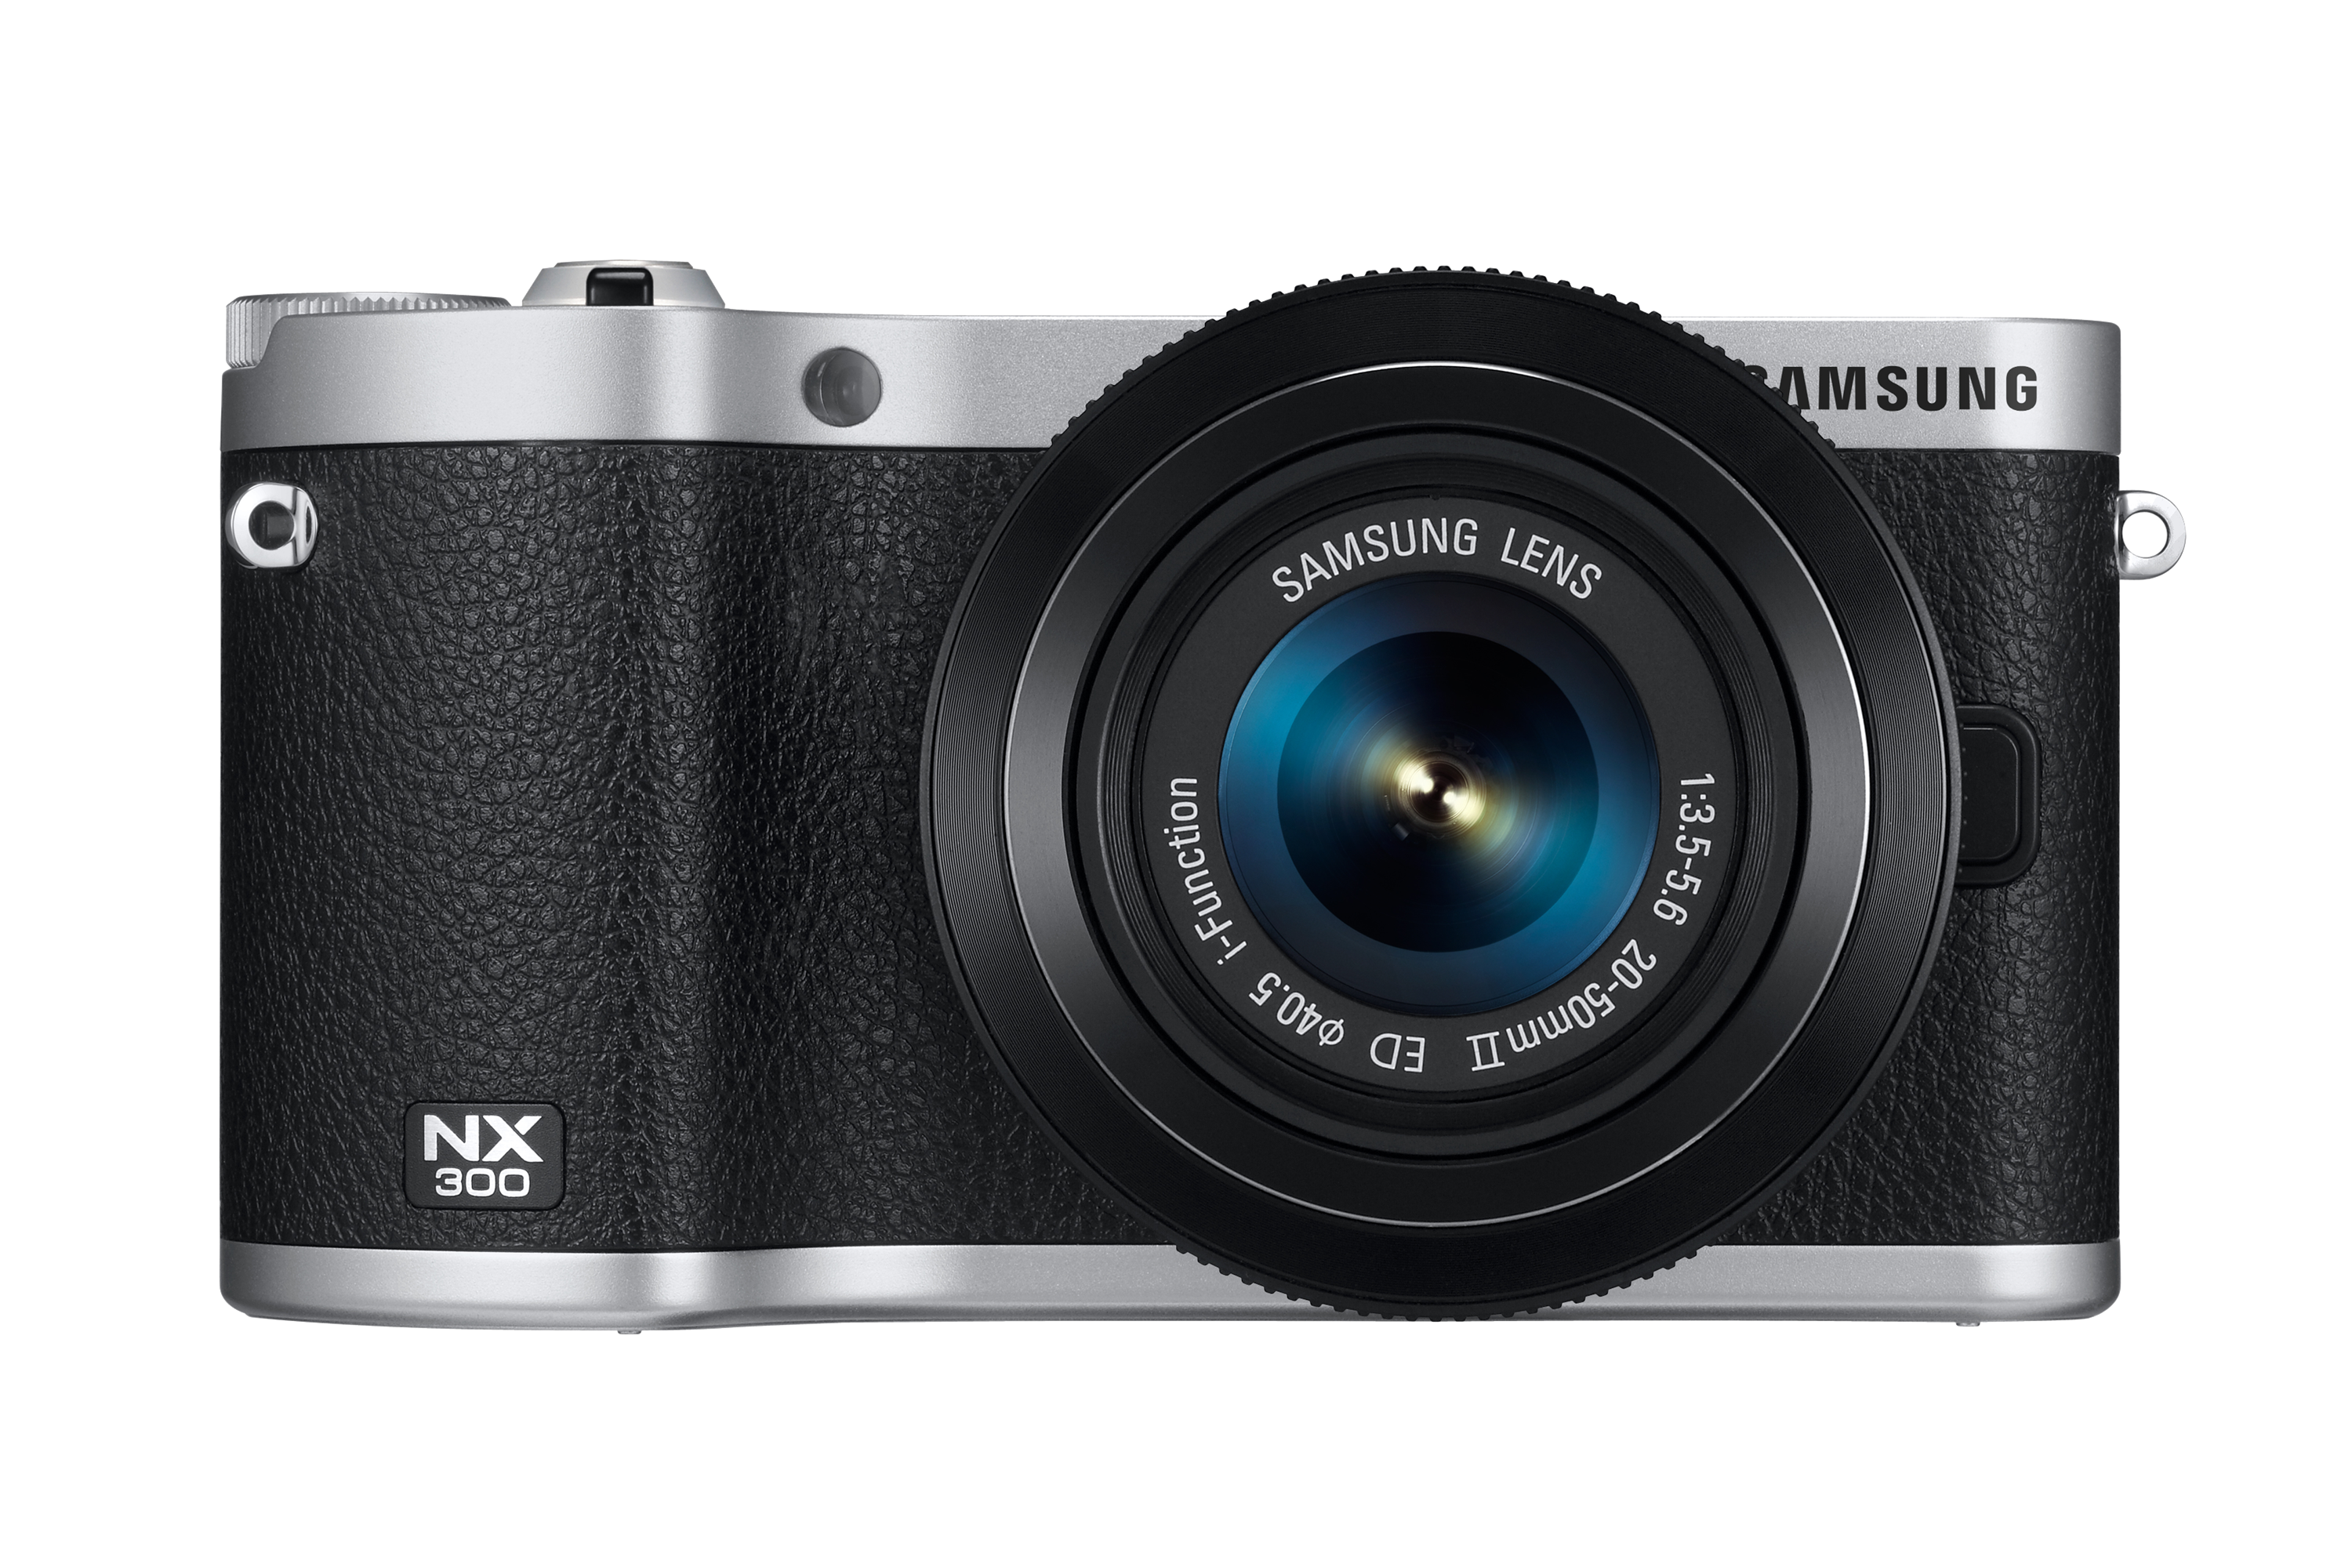 NX300 with 20-50mm lens